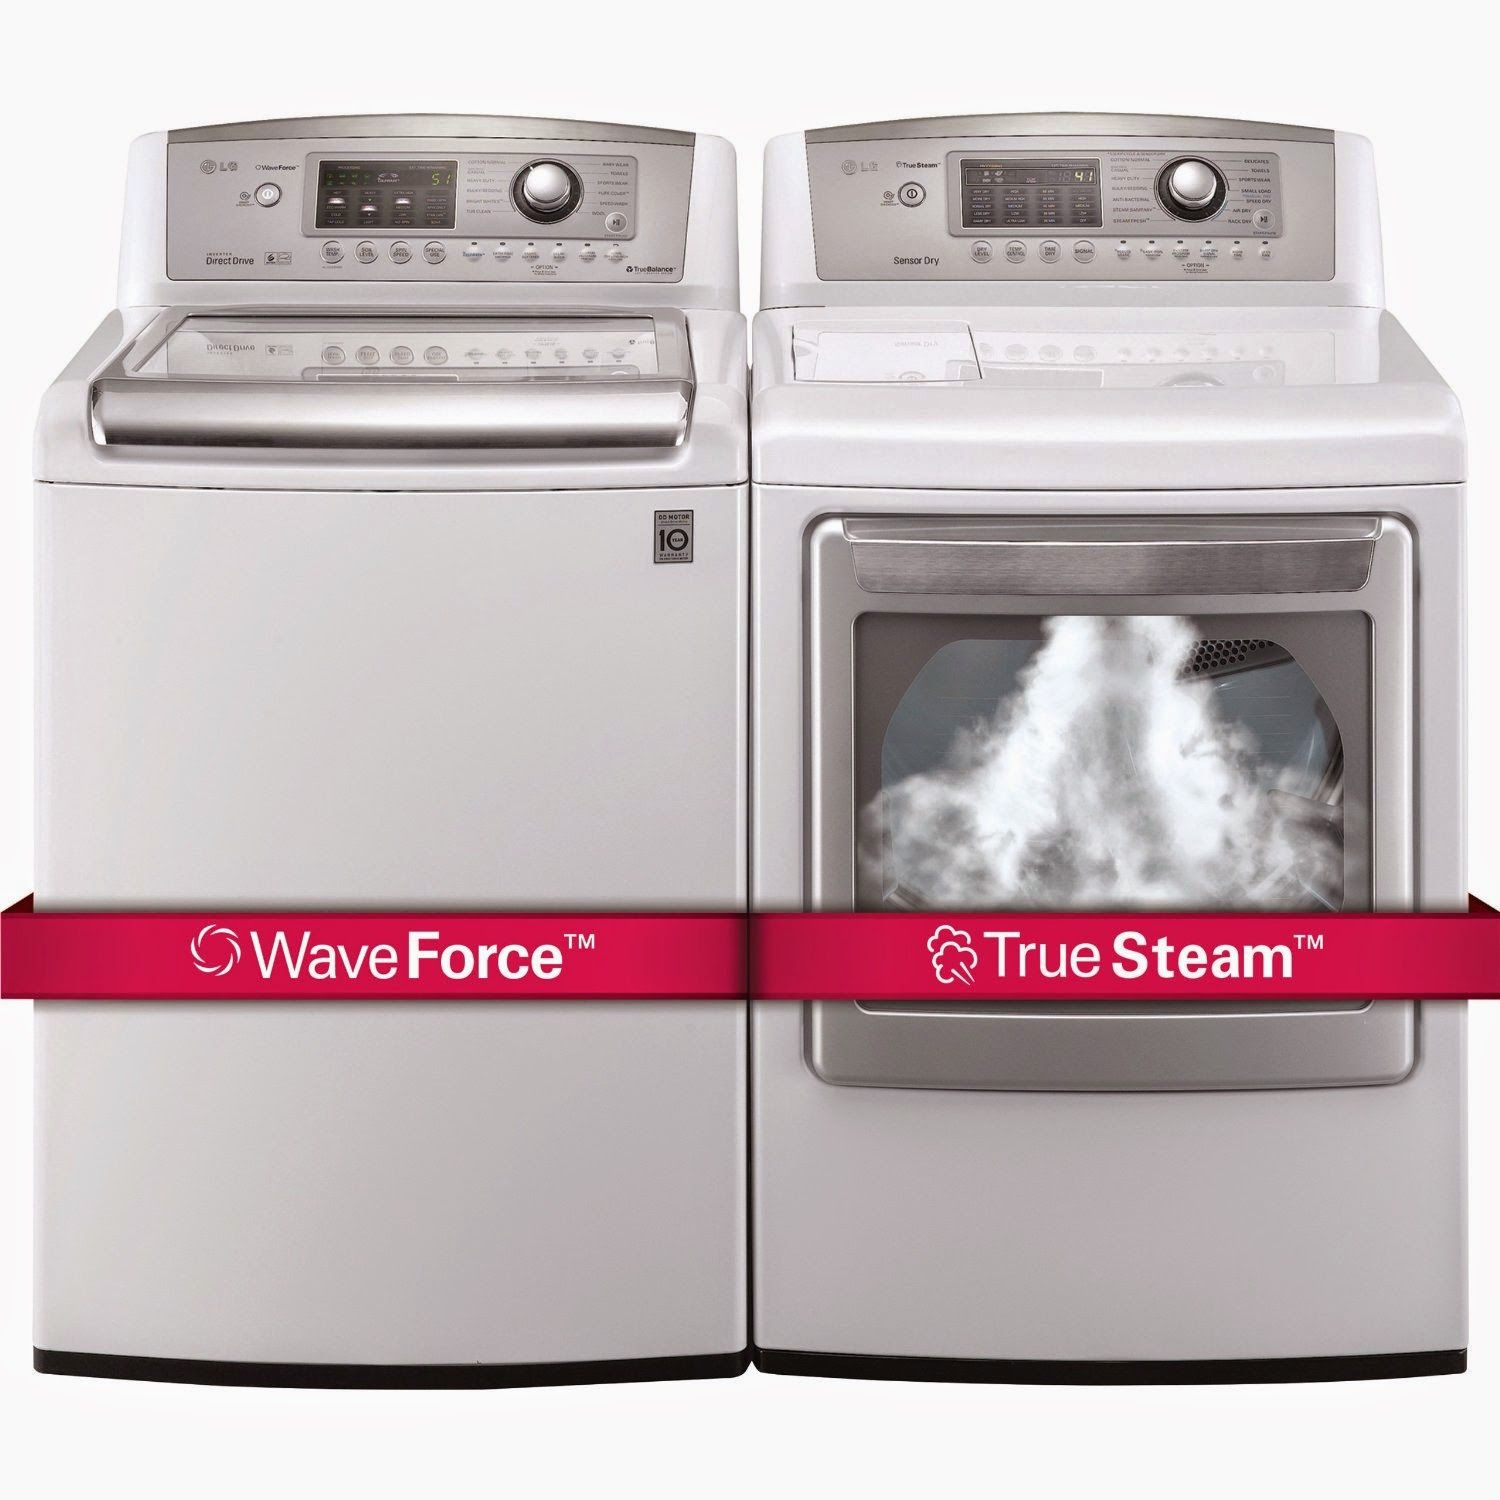 The best top load washer on the market - Lg Washer Dryer Lg Top Load Washer And Dryer